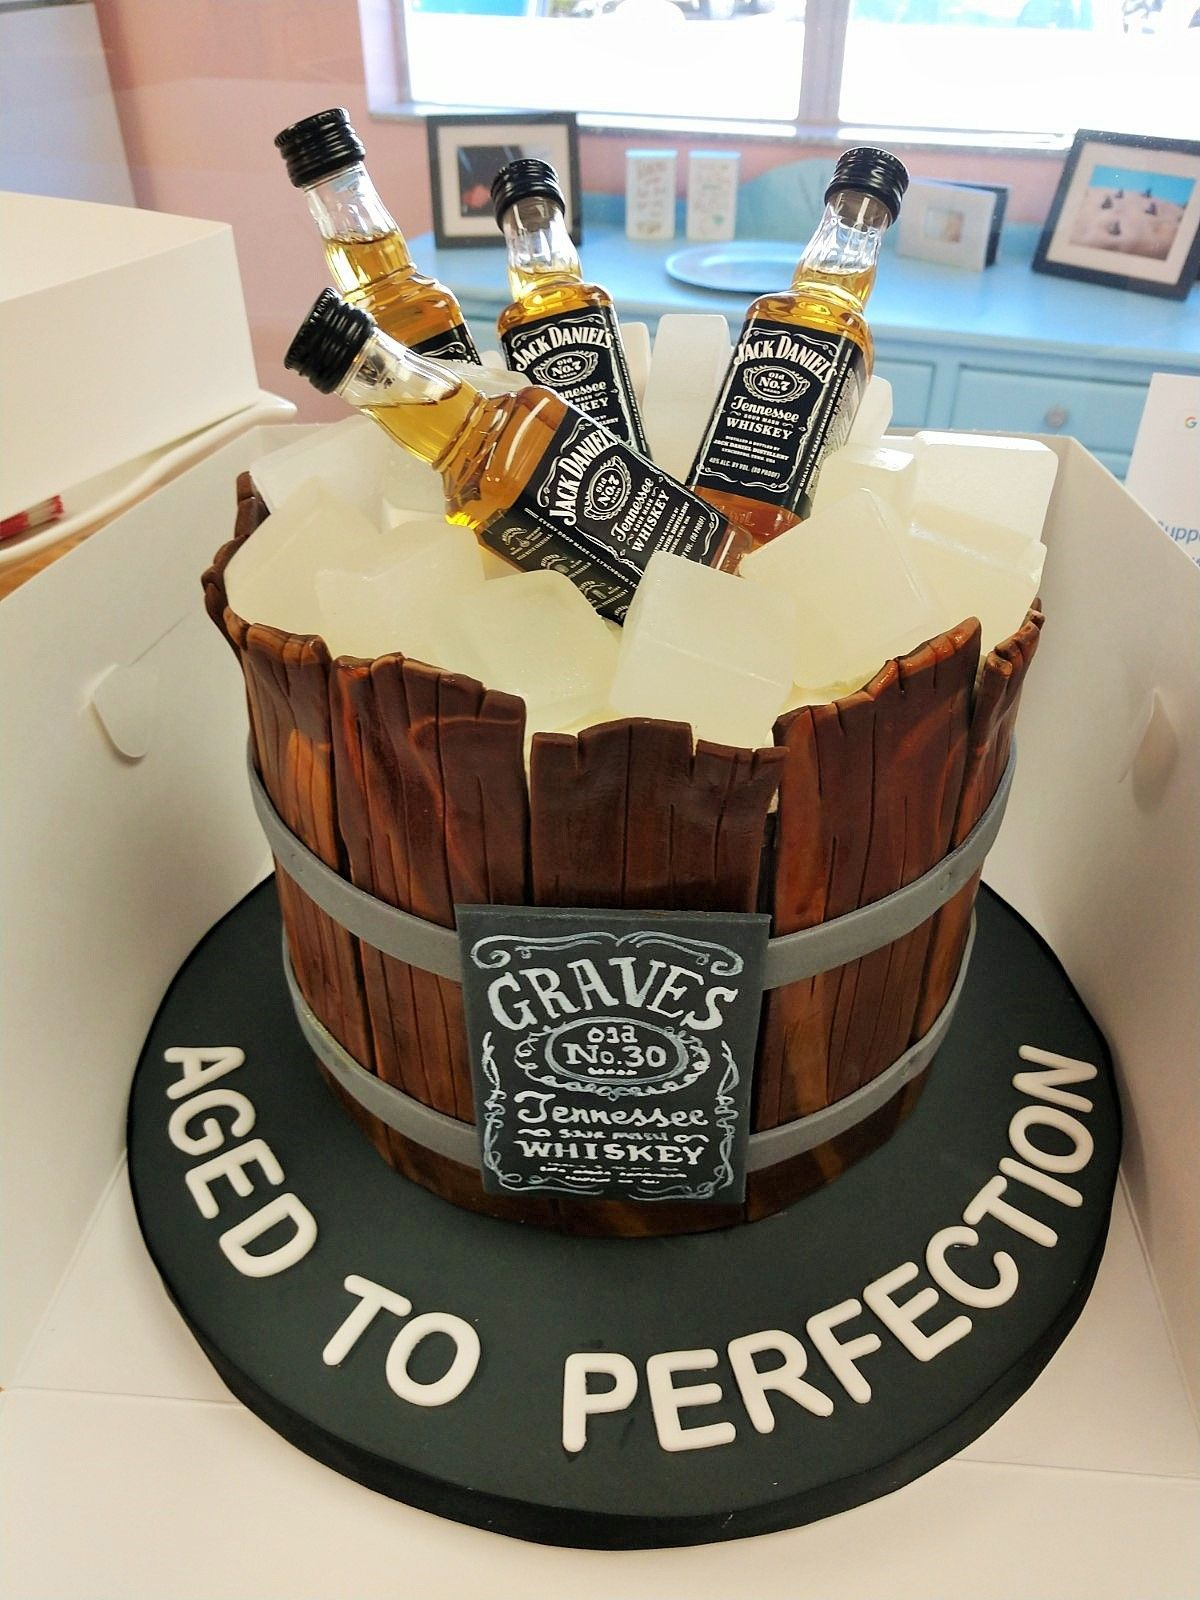 Swell Jack Daniels Cake 30Th Birthday Cake Birthday Cakes For Guys Personalised Birthday Cards Petedlily Jamesorg